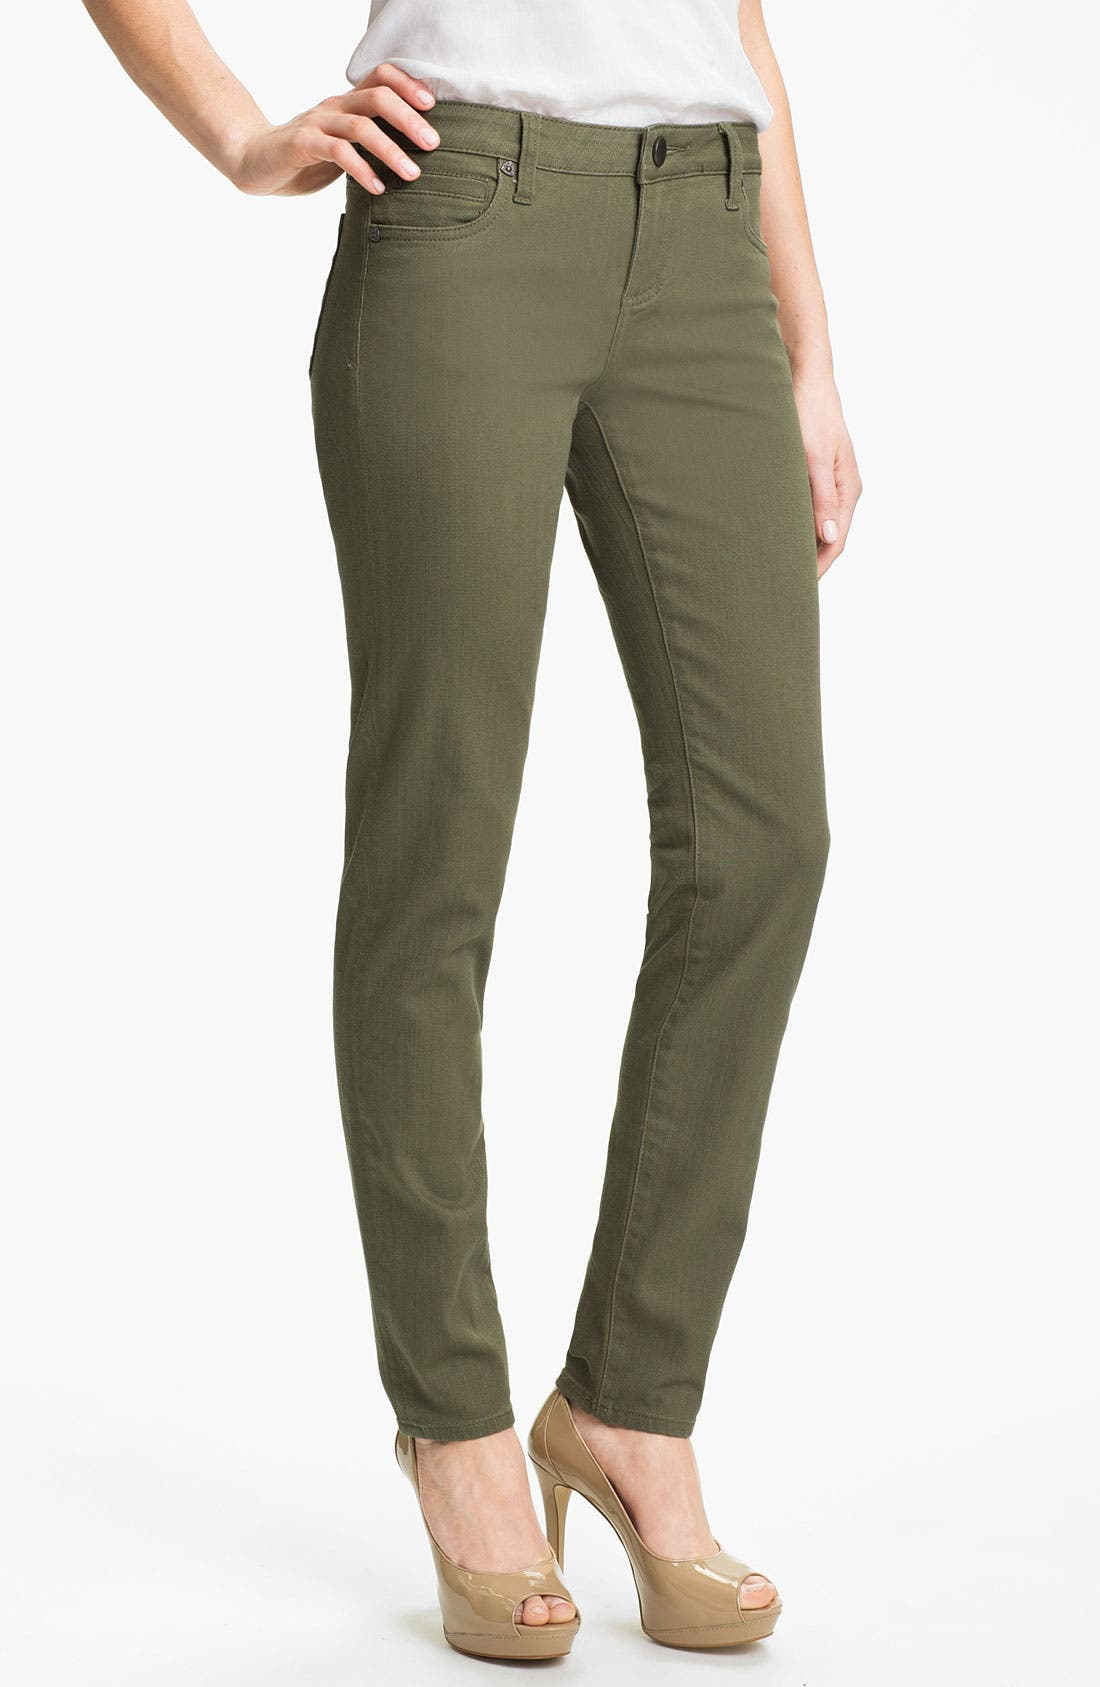 Main Image - KUT from the Kloth 'Diana' Skinny Jeans (Pacific Olive)